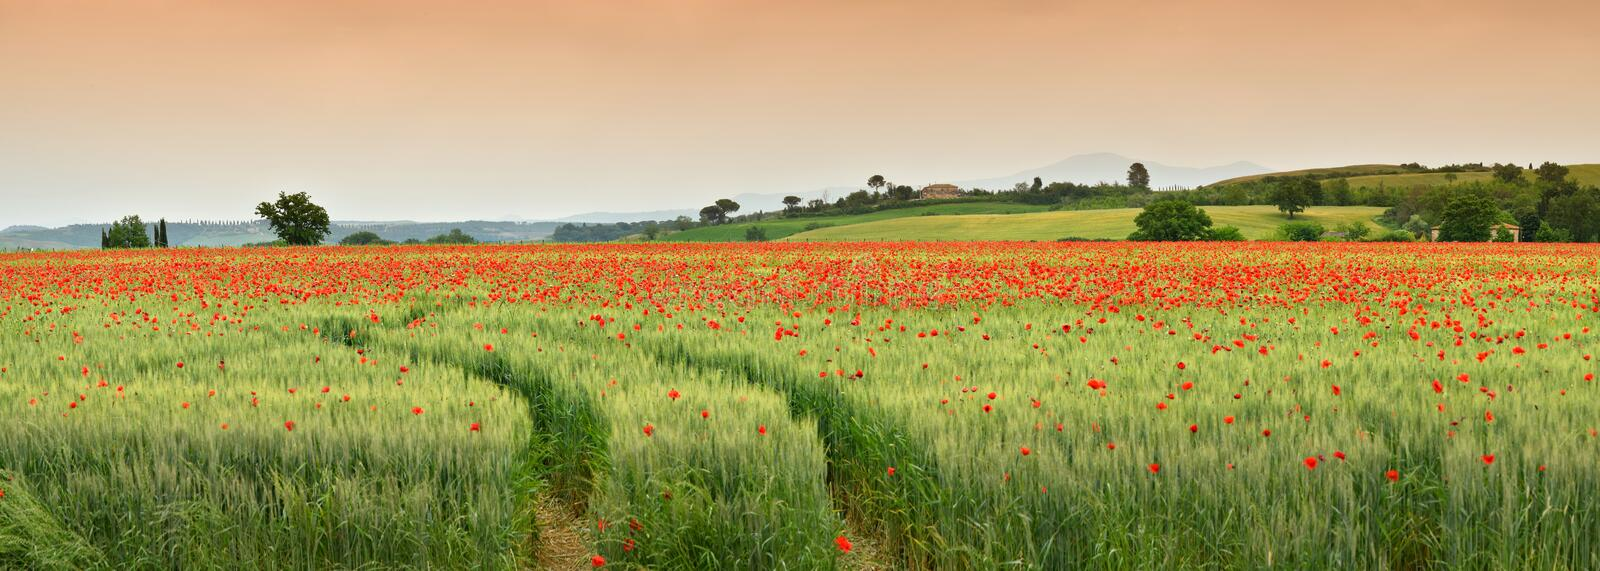 Spectacular Tuscany spring landscape with red poppies in a green wheat field, near Monteroni d`Arbia, Siena Tuscany. Italy stock photos